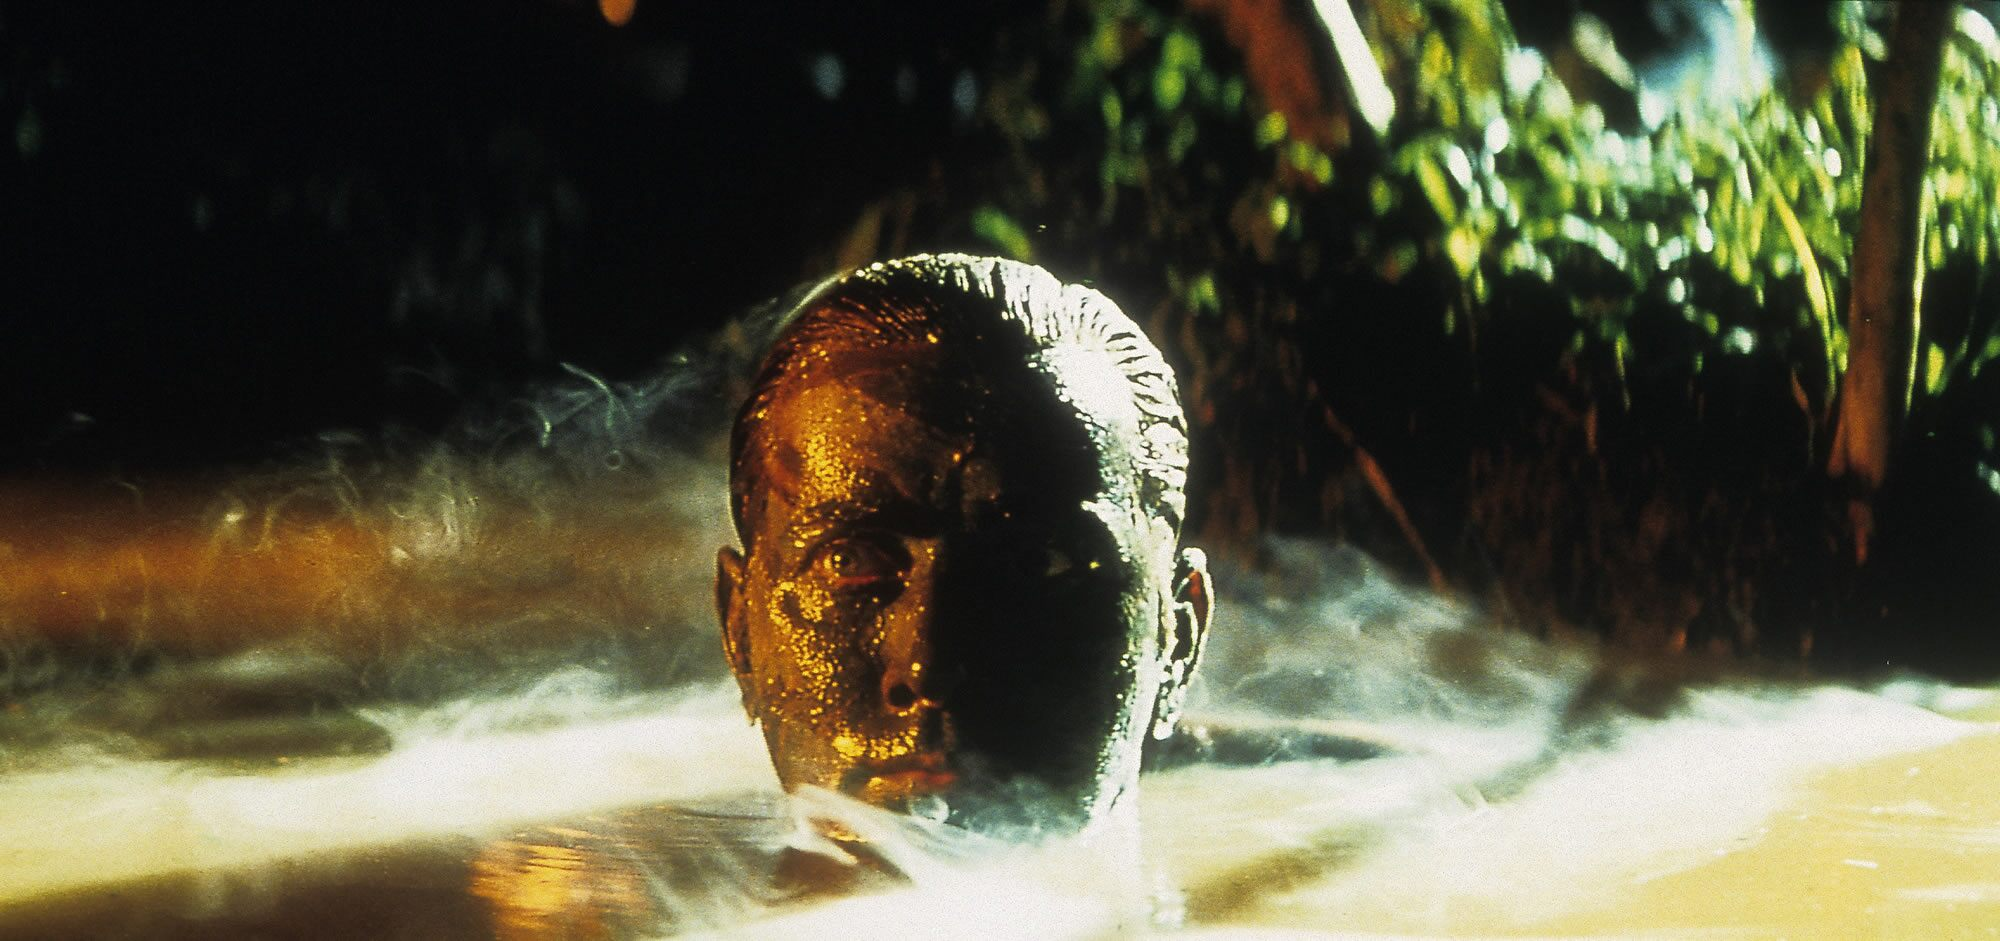 as Willard in APOCALYPSE NOW